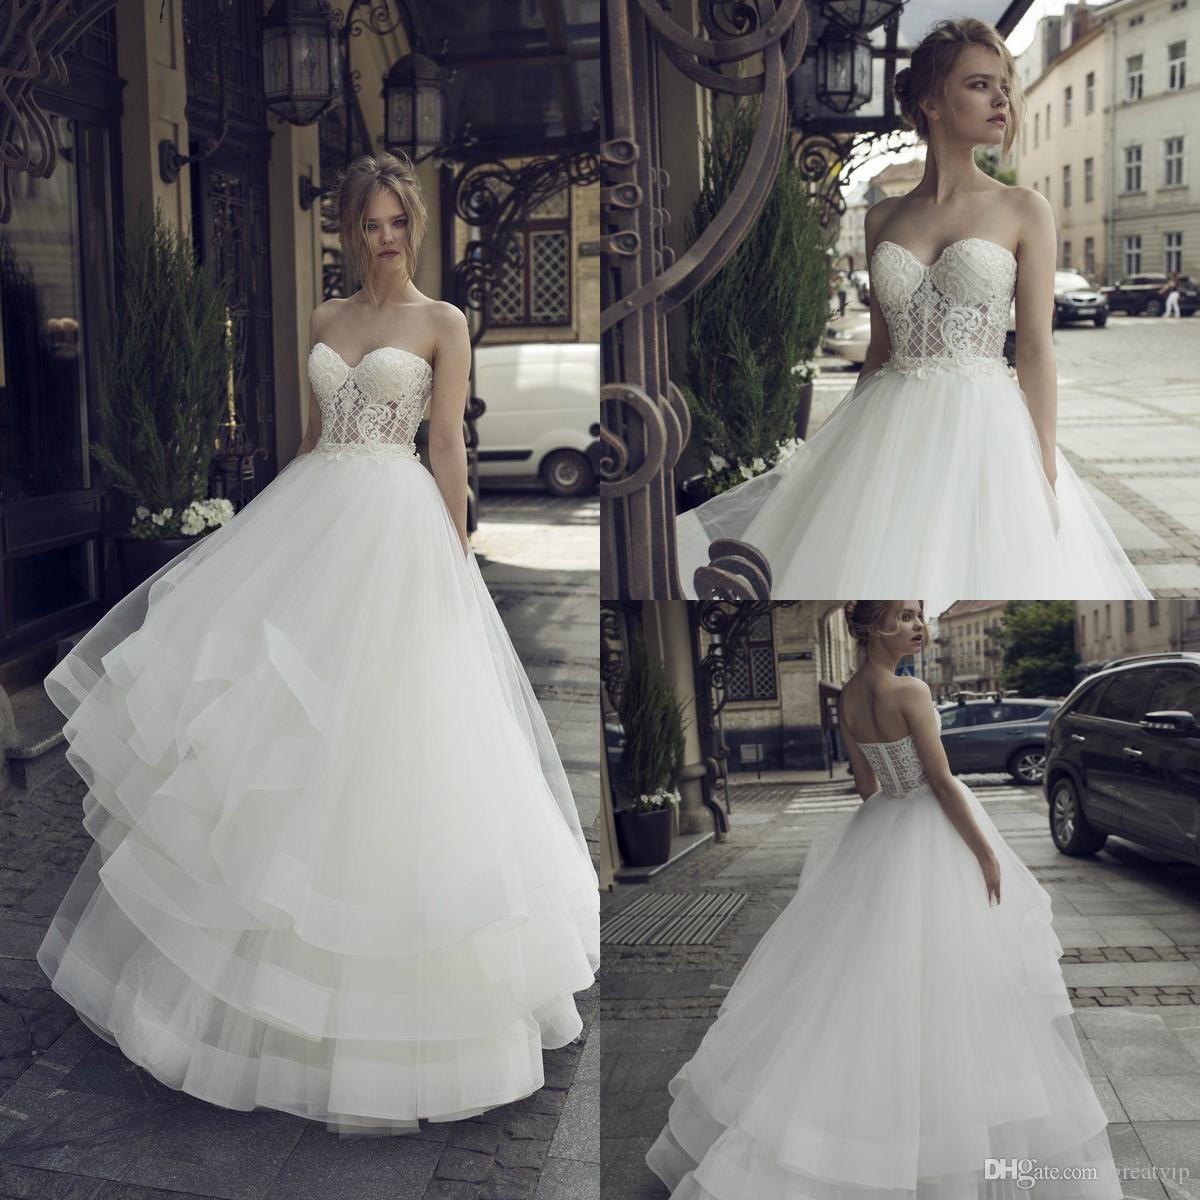 3b96366d0e 2019 Riki Dalal A Line Wedding Dresses Sweetheart Lace Applique Beads  Ruffles Bridal Gowns Plus Size Tulle Sweep Train Bridal Gowns Vestidos